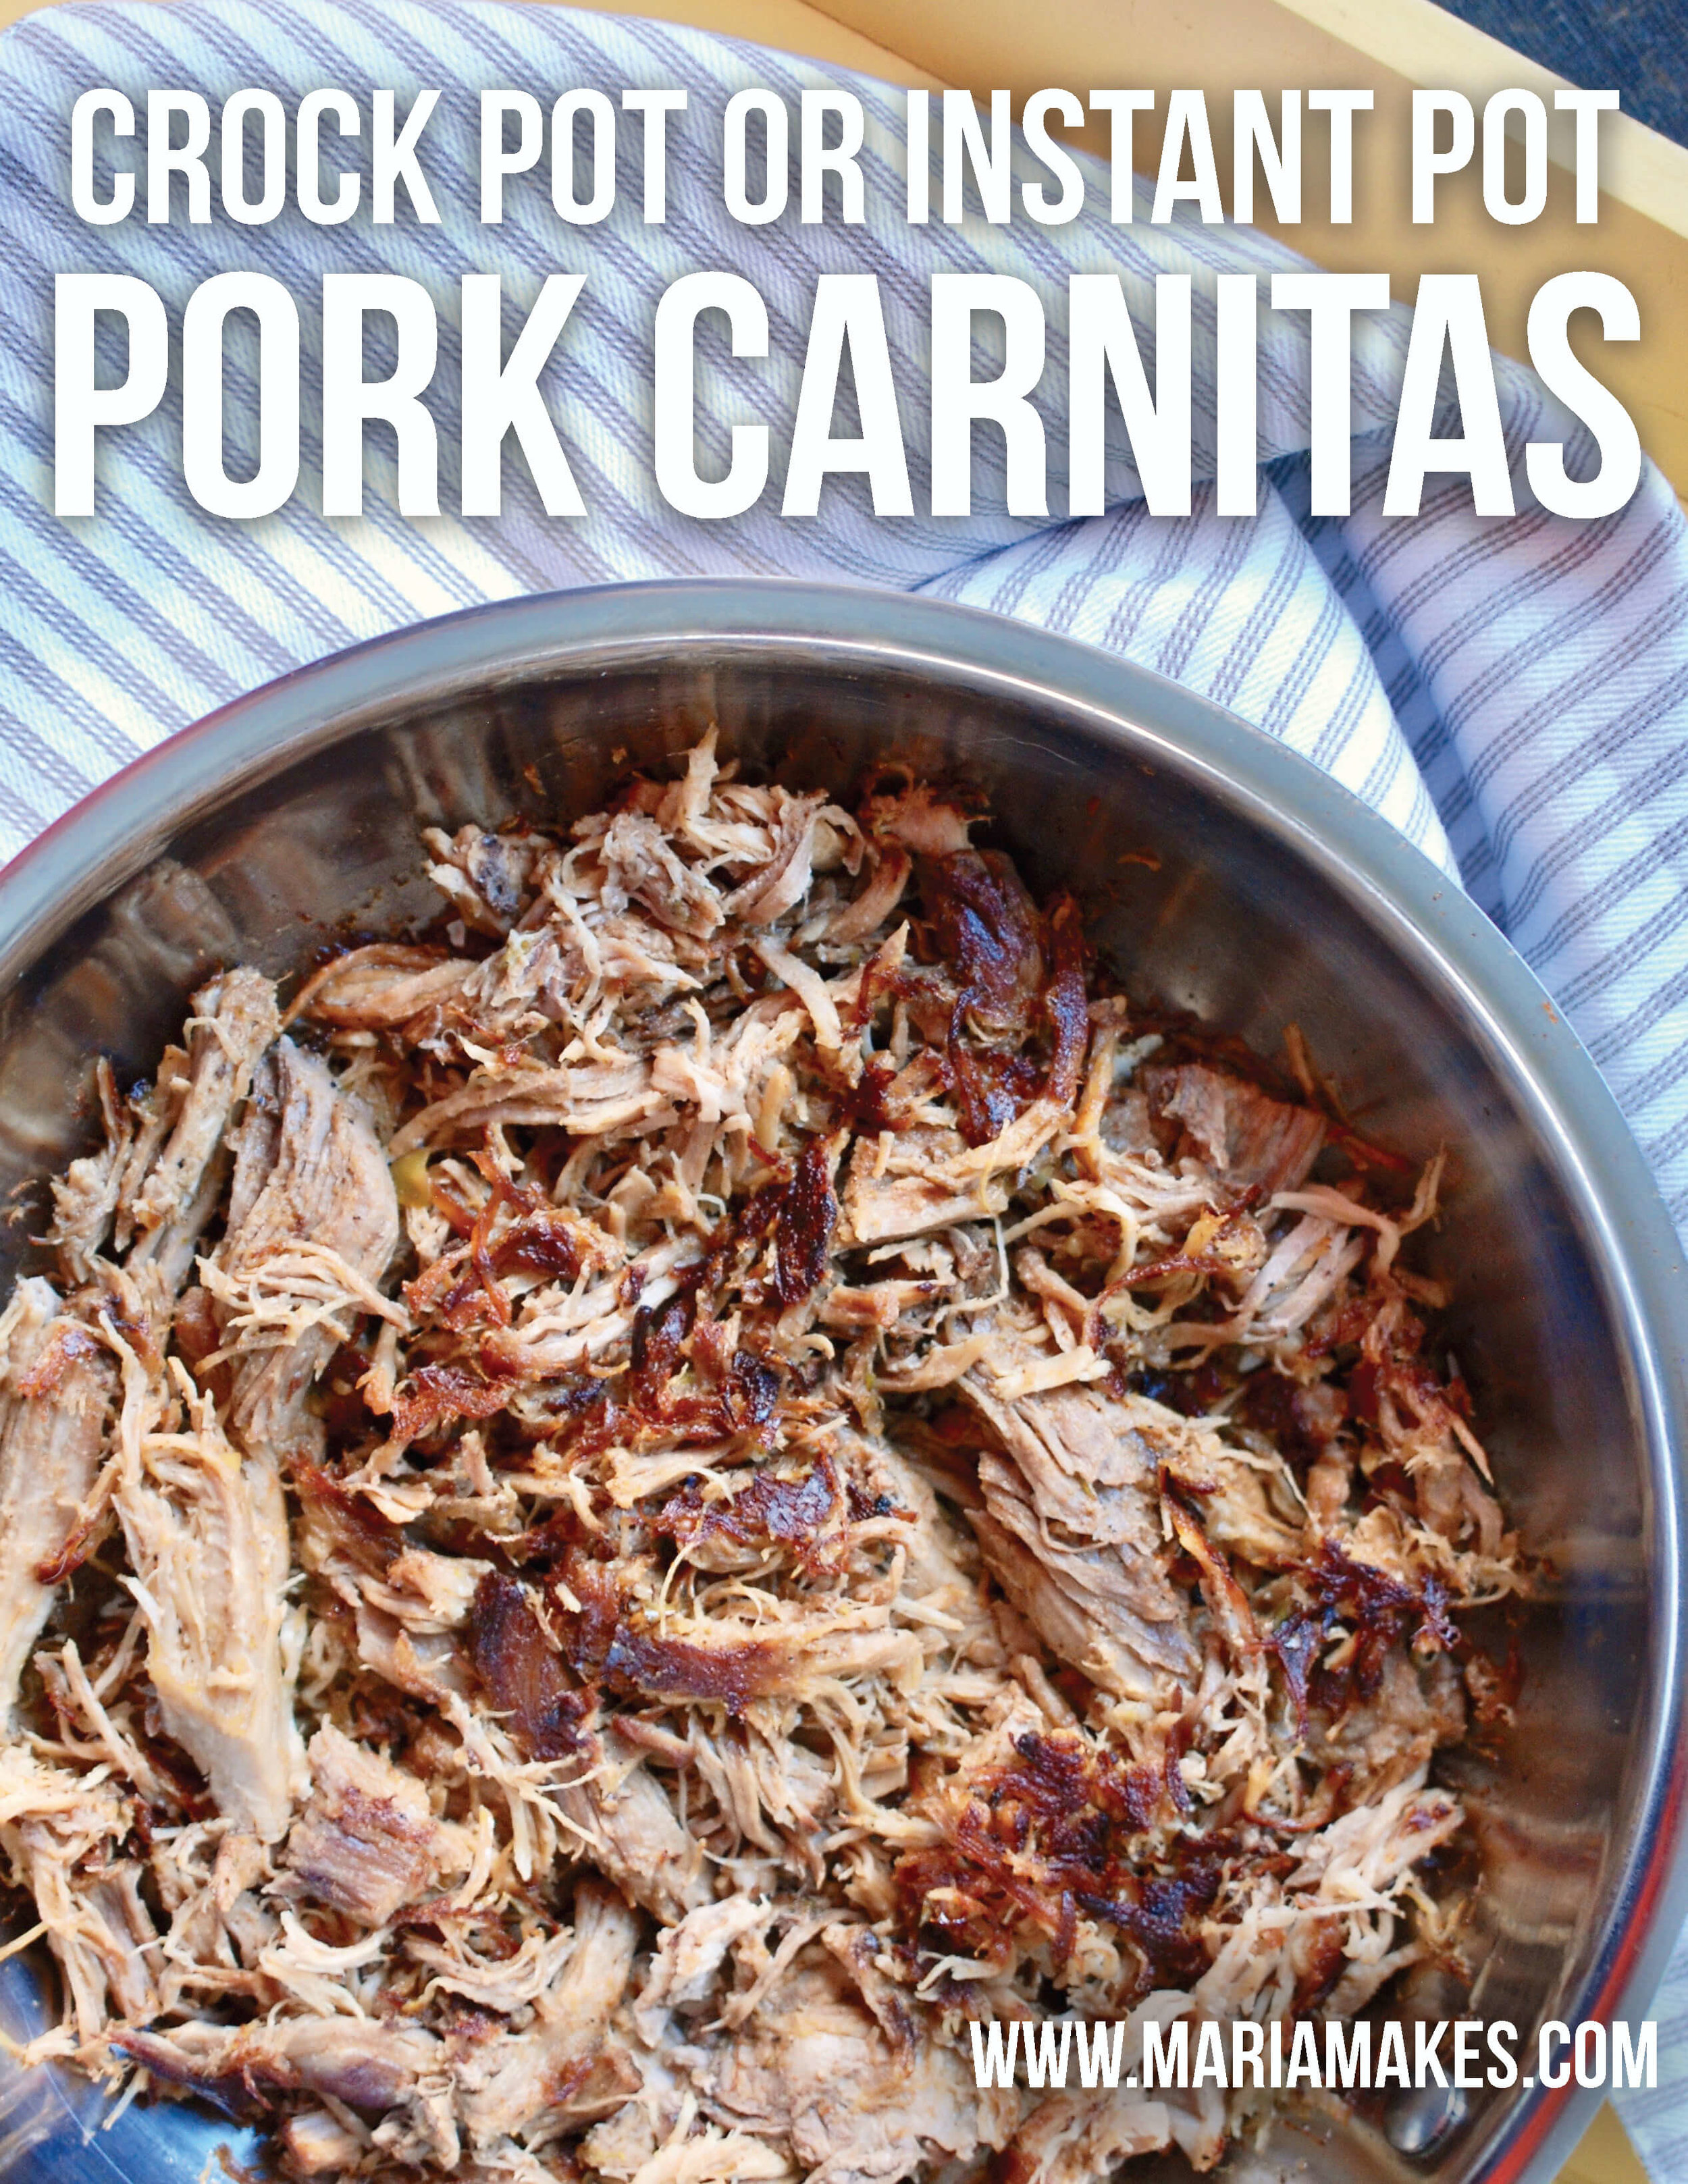 Crock Pot or Instant Pot Carnitas – Maria Makes: Perfectly seasoned, crispy pork carnitas. The perfect muti-purpose protein for tacos, bowls, salads, you name it!